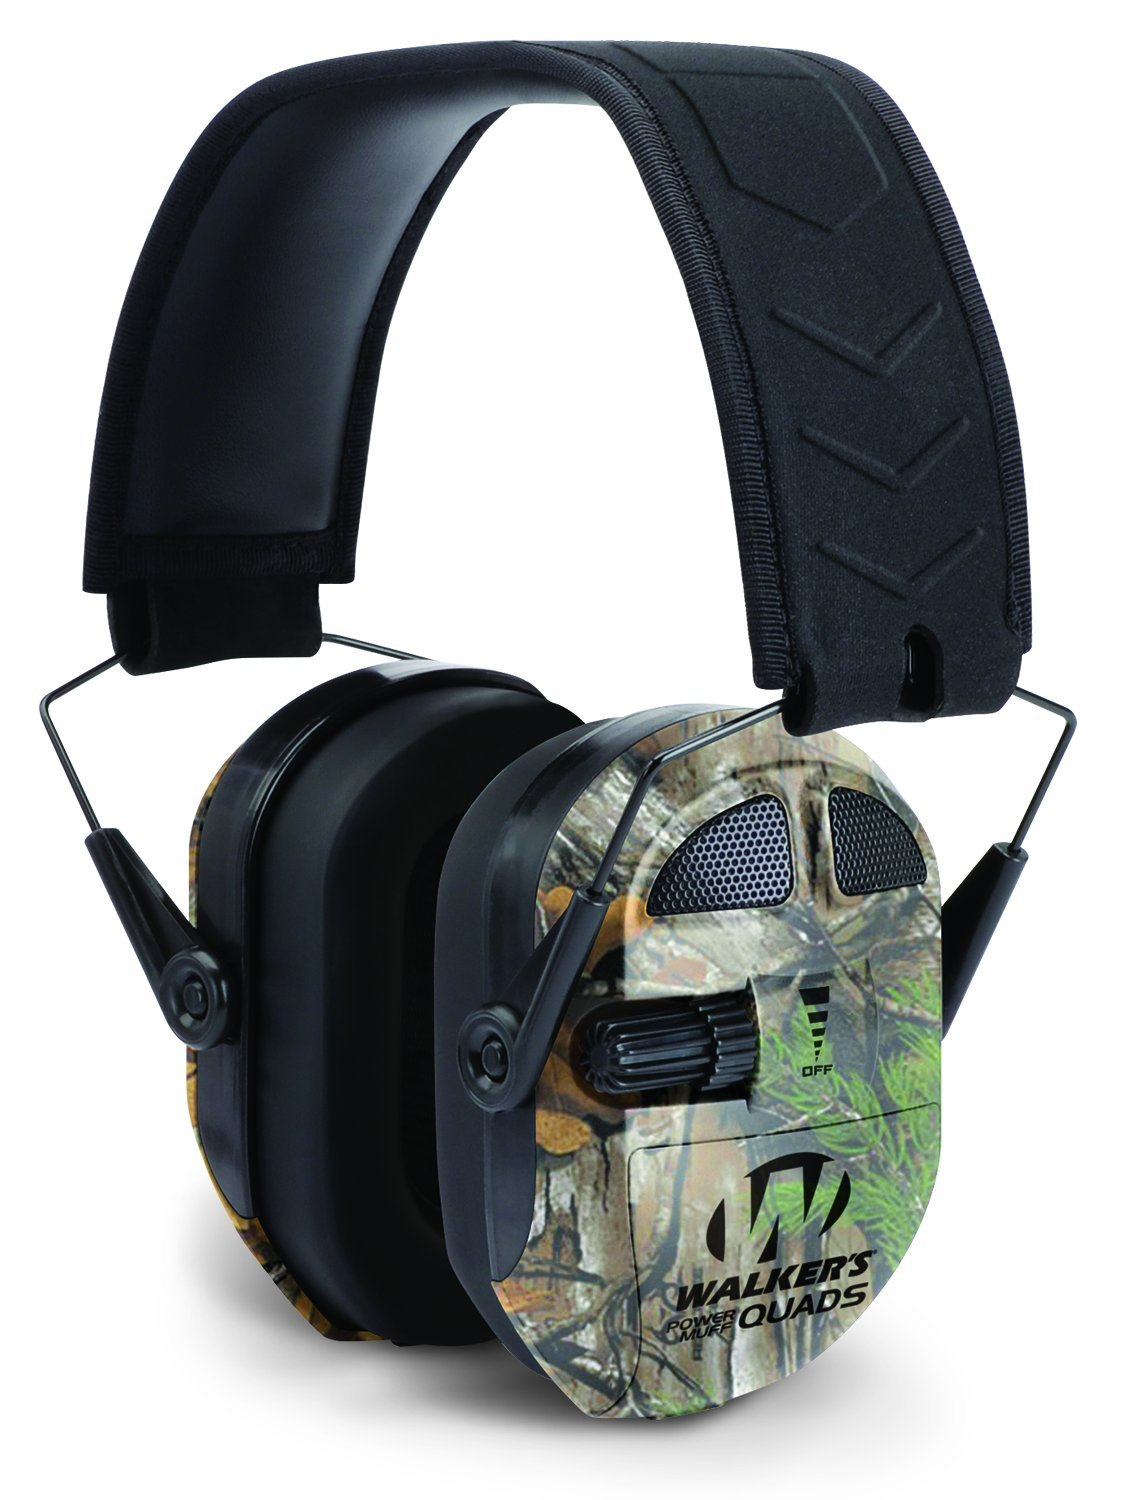 Walker's Ultimate Power Muff Quads with AFT/Electric, Realtree Xtra Camo